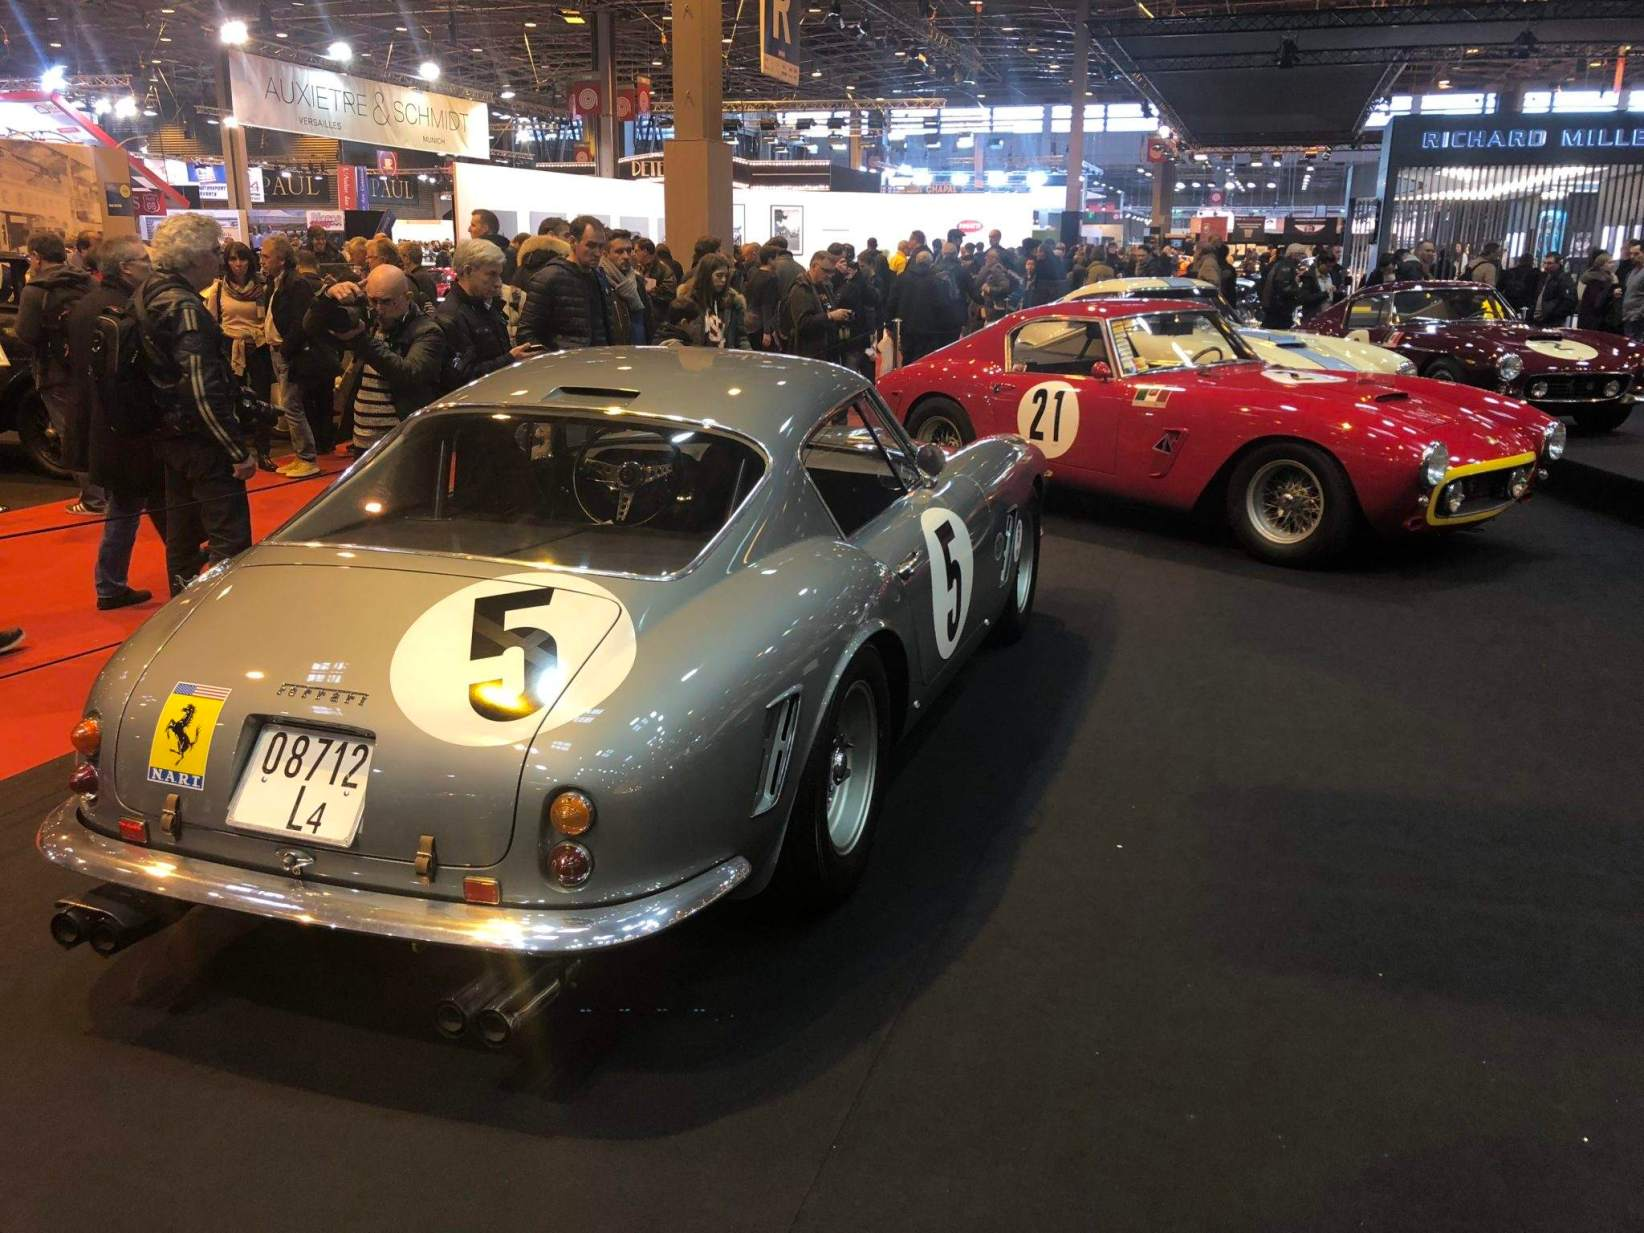 Lukas Hüni's stand was the most... Amazing, astonishing, wonderful! With no more than ten 250 GT Berlinetta Passo Corto